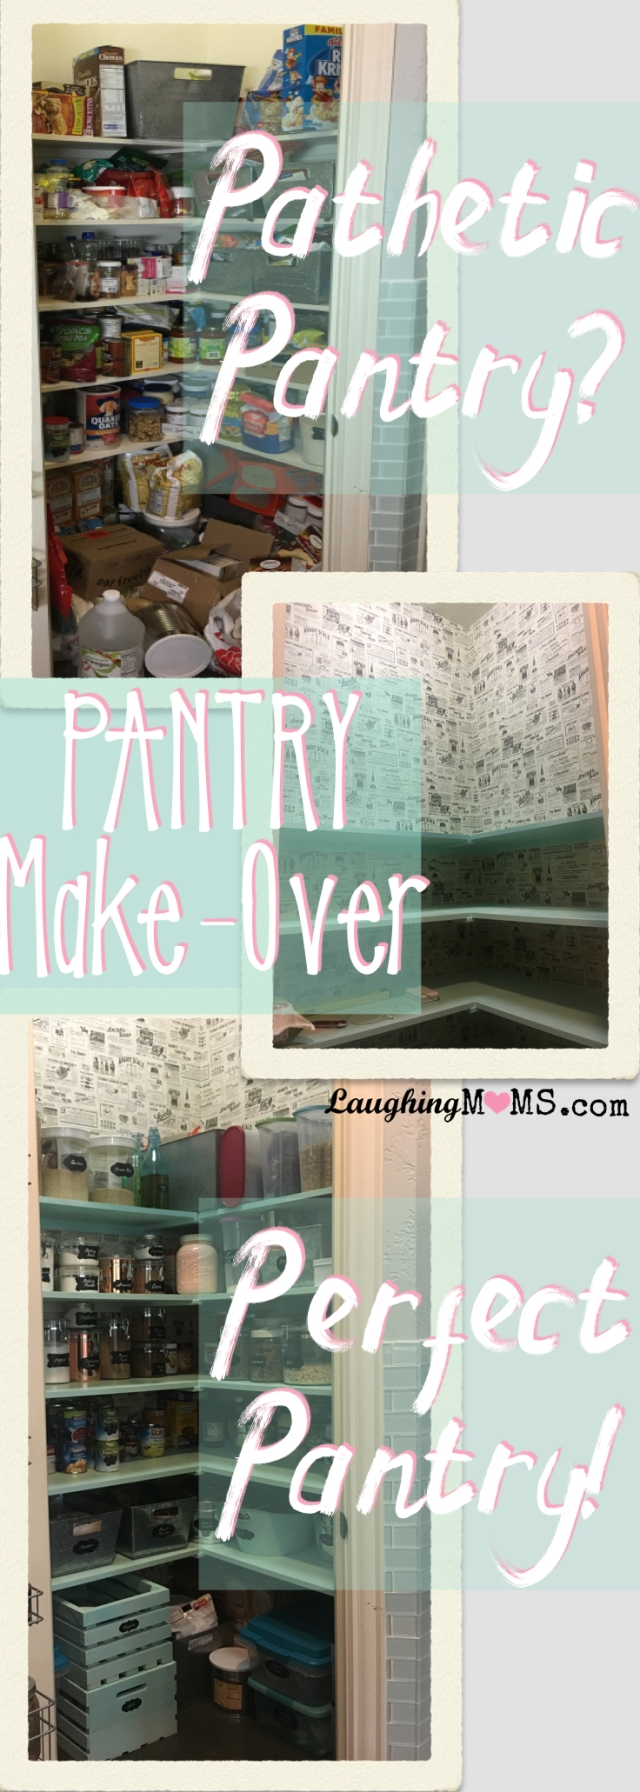 Pantry Make-over Pinterest Image.001